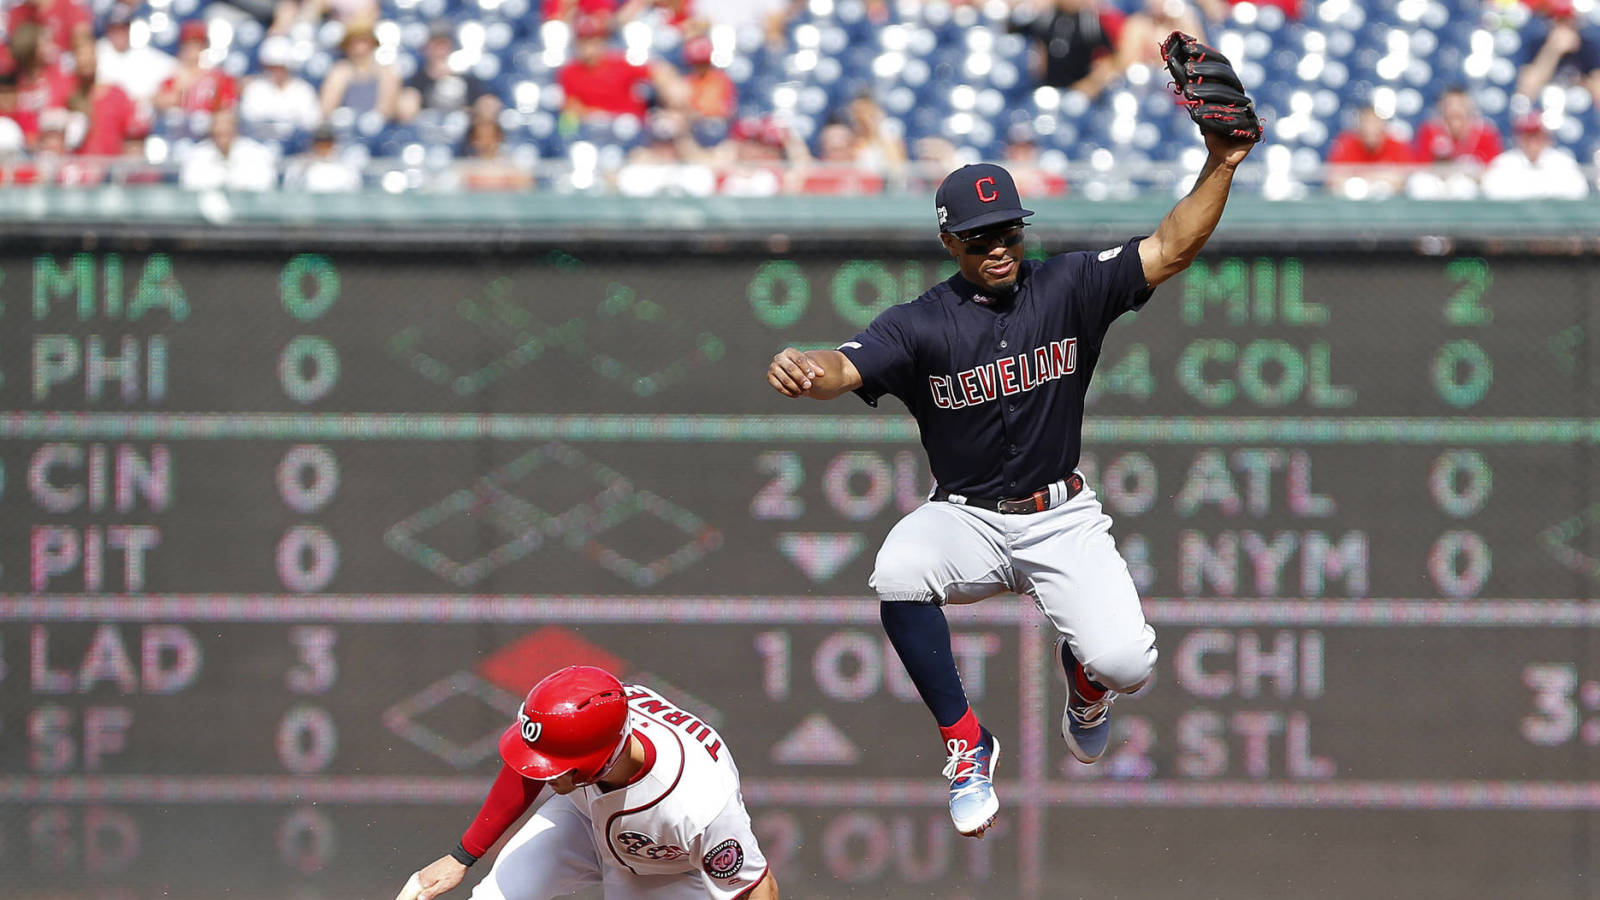 Watch: Indians' Francisco Lindor drills homer, somersaults across home plate